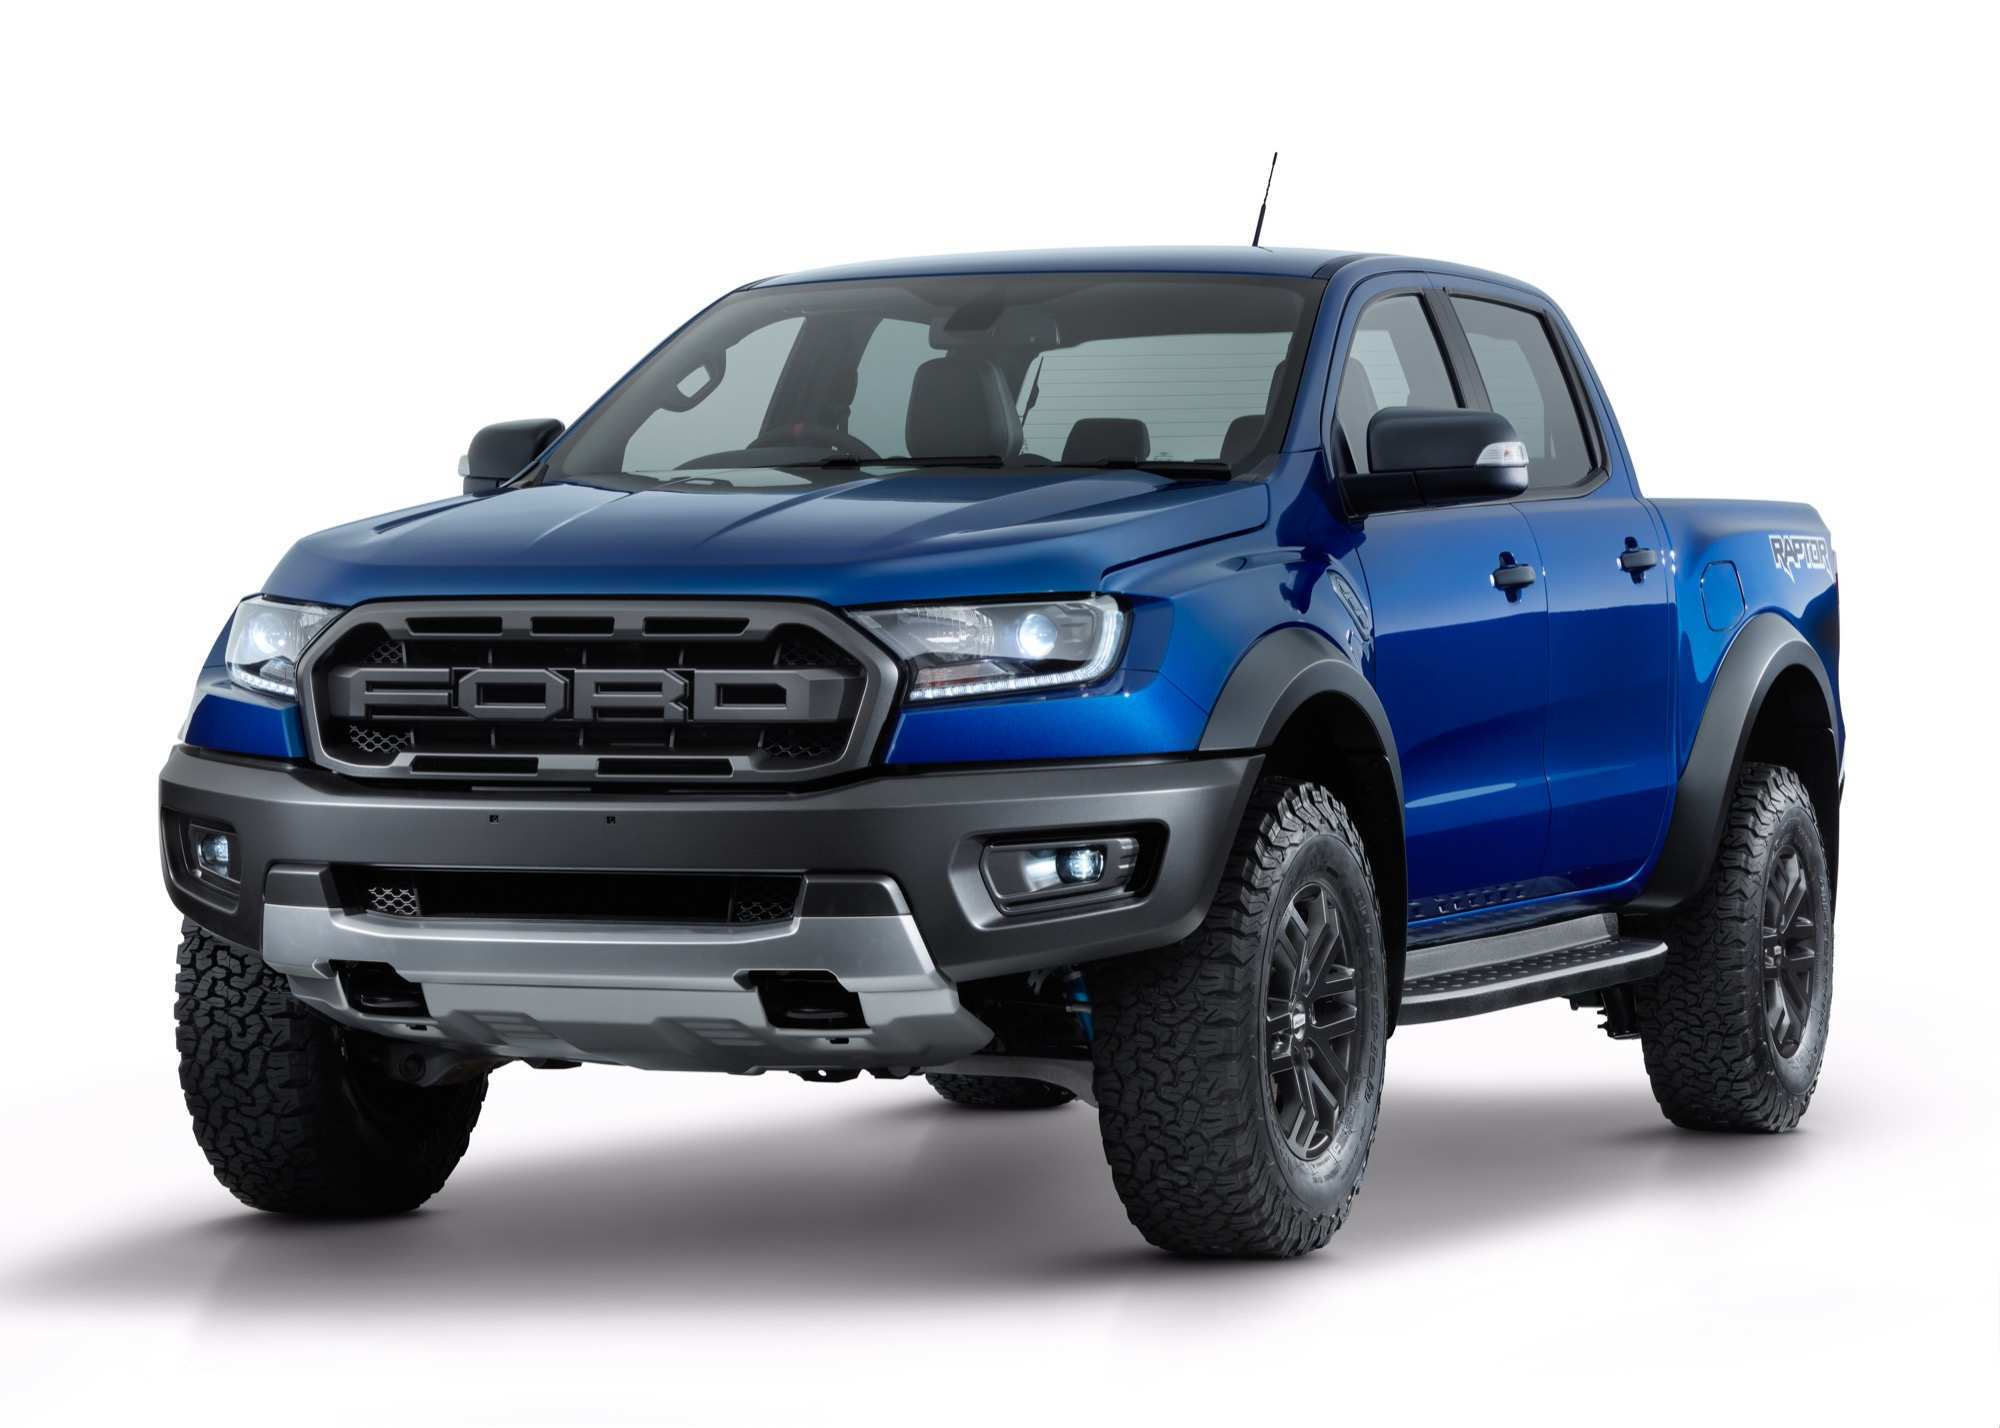 54 Best Review Ford Ranger 2019 Specs Performance And New Engine Model for Ford Ranger 2019 Specs Performance And New Engine